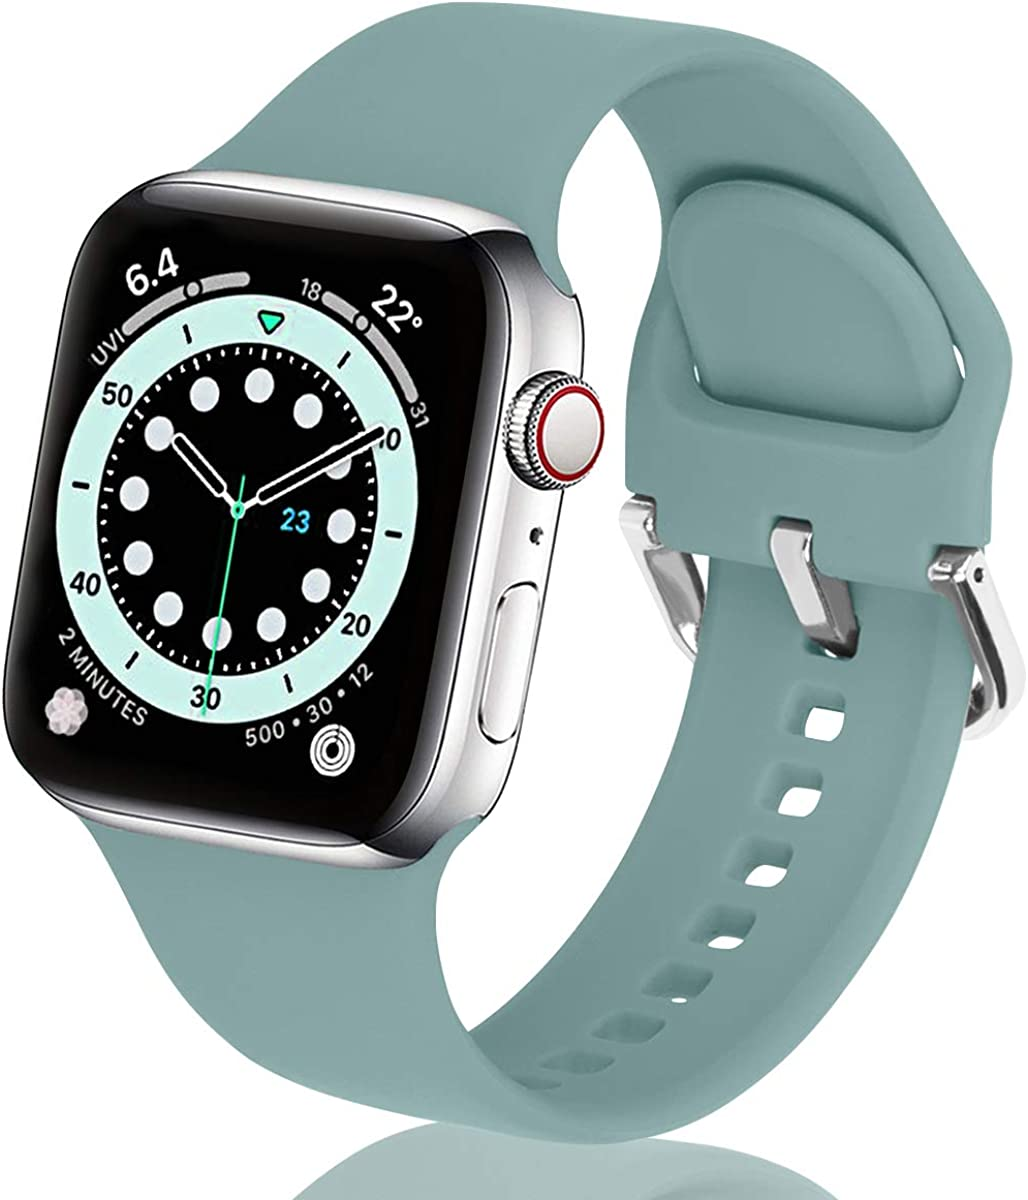 eCamframe Bands Compatible with Apple Watch Band 40mm 38mm 42mm 44mm,Soft Silicone Sport Replacement Wristband Compatible with iWatch Series 6 5 4 3 2 1 & SE Women Men